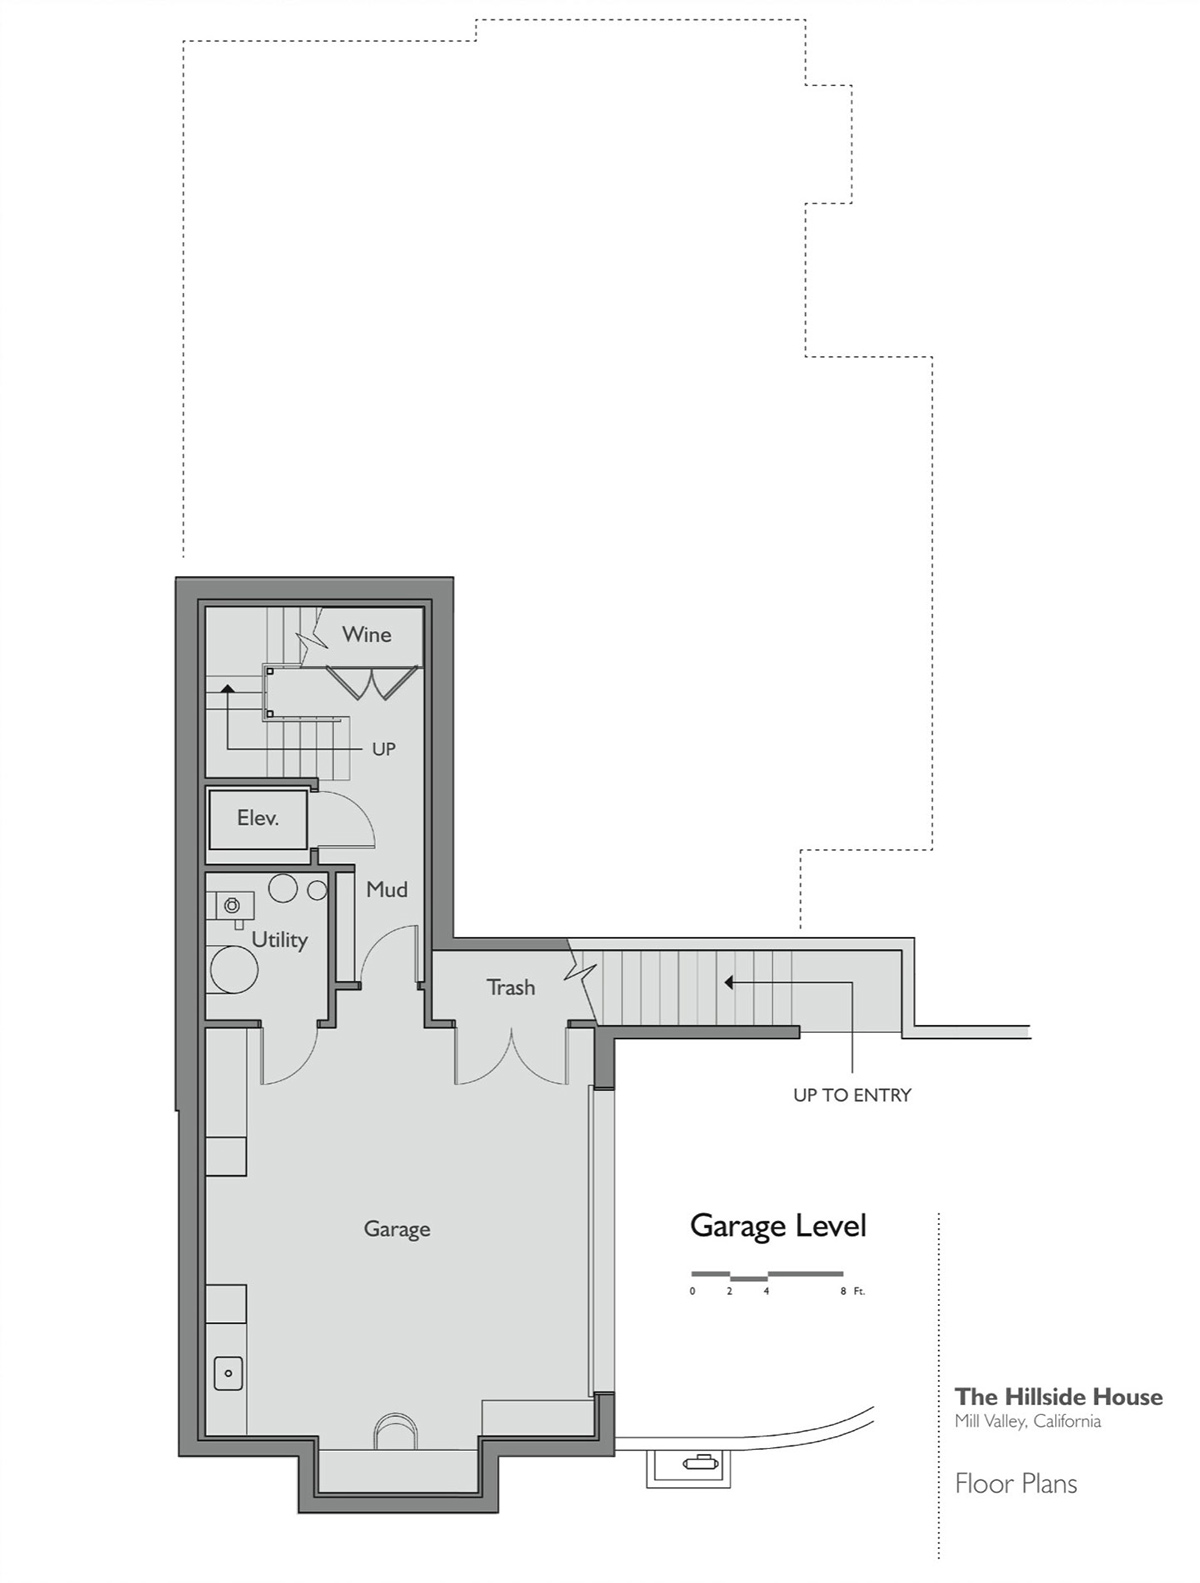 Floor Plan, Garage Level, Hillside House, California by SB Architects